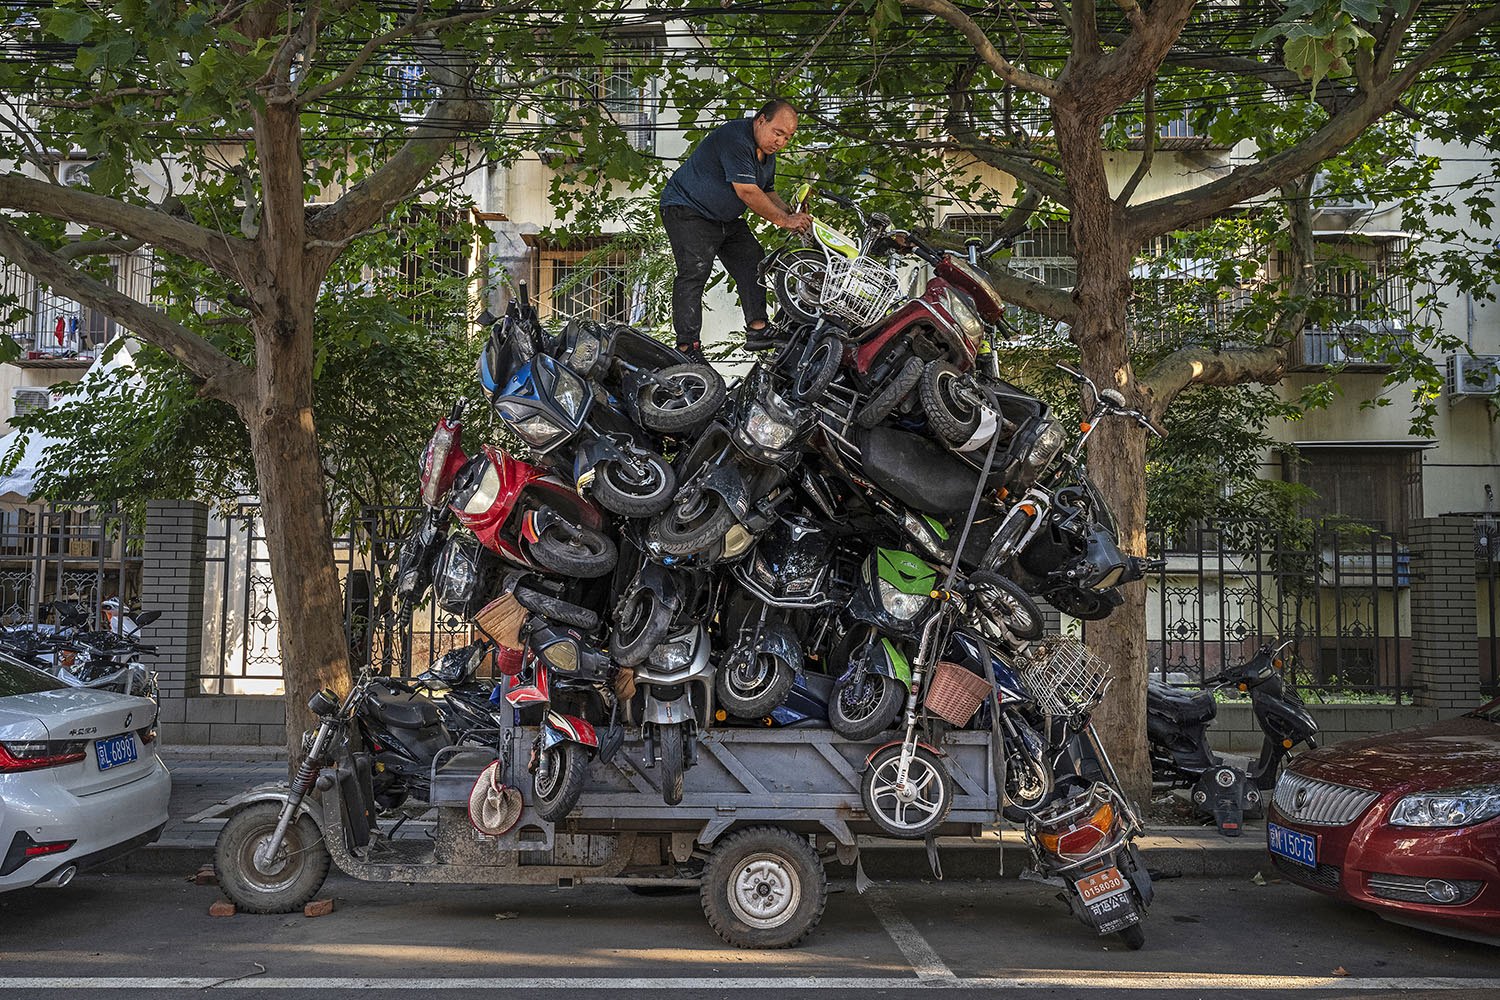 A worker piles salvaged electronic bikes and scooters on the back of his truck before taking them to be recycled in Beijing on Aug. 31. Kevin Frayer/Getty Images